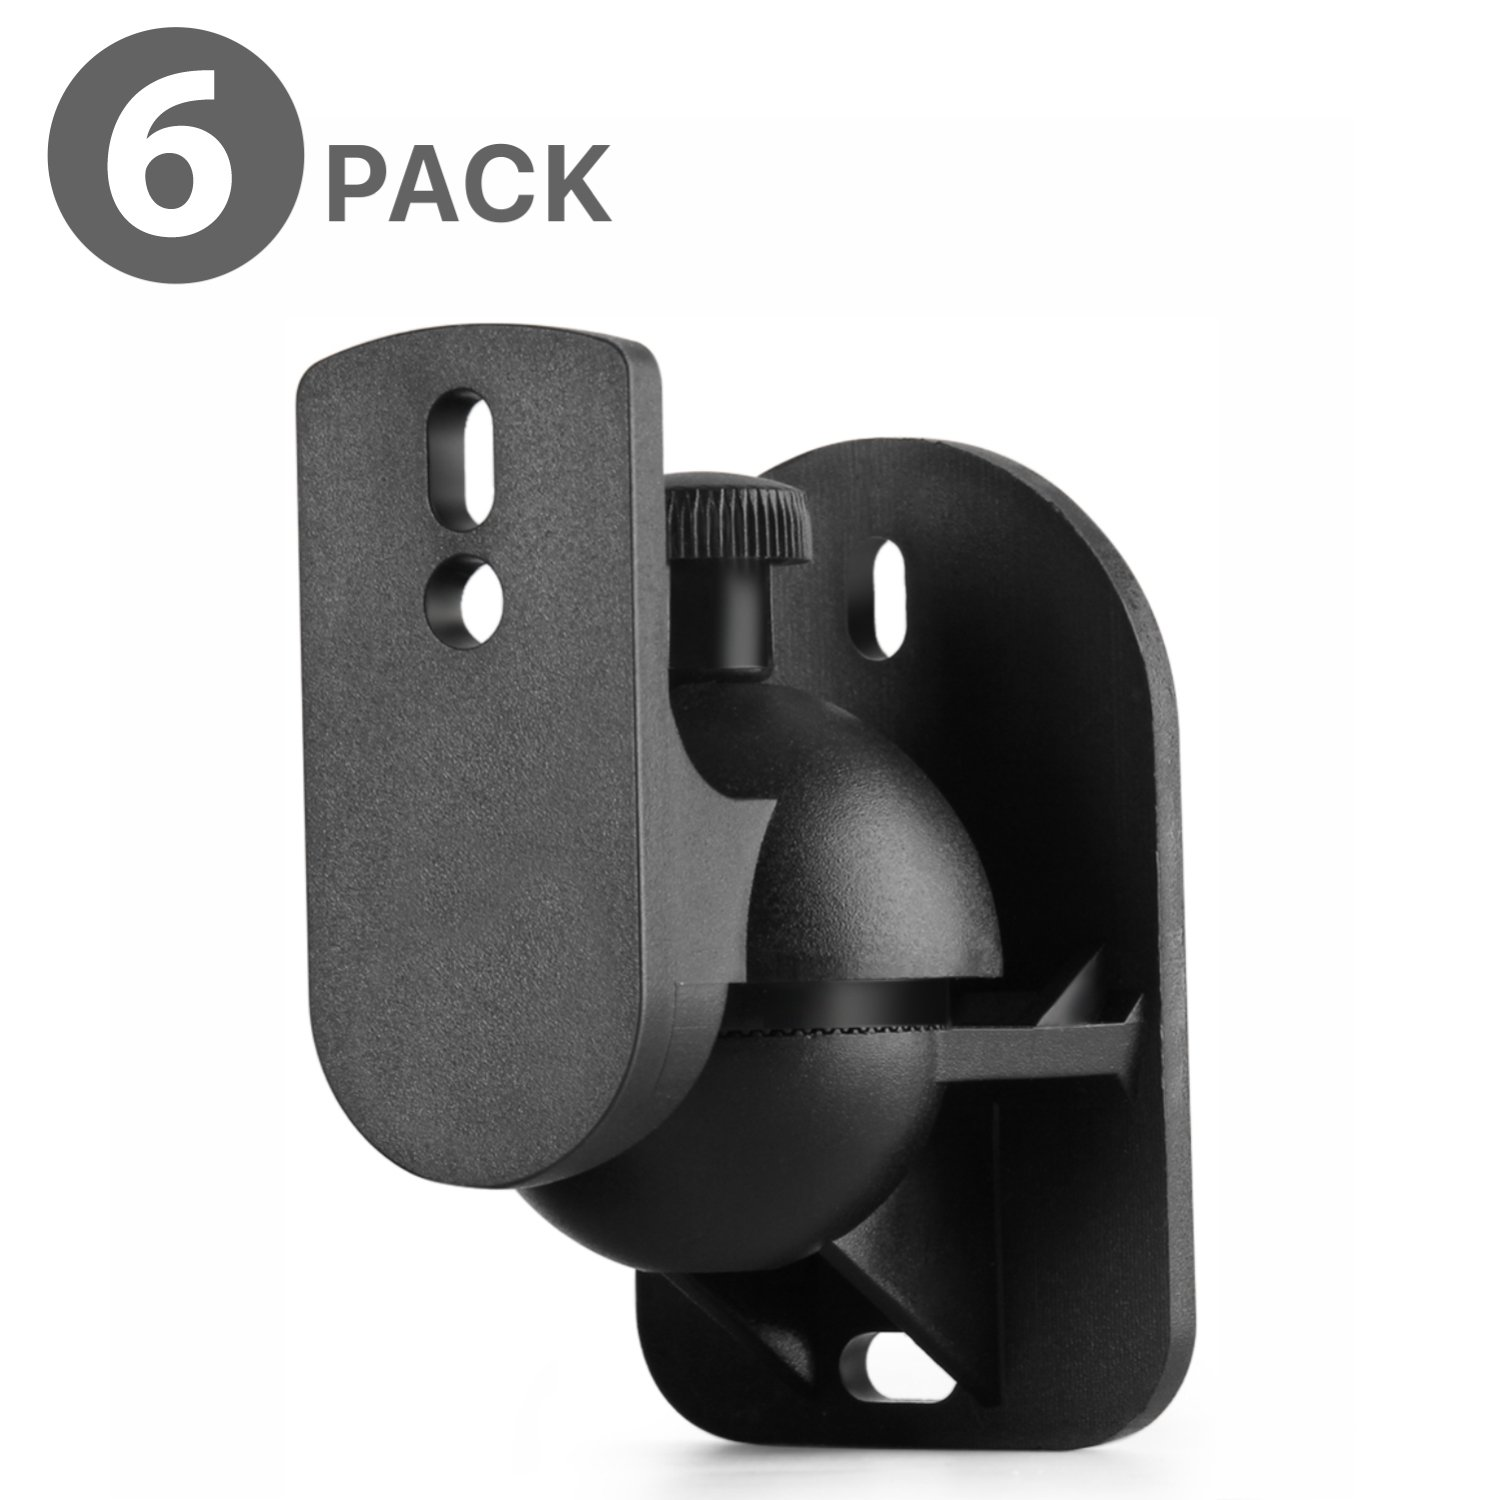 TNP Universal Satellite Speaker Wall Mount Bracket Ceiling Mount Clamp with Adjustable Swivel and Tilt Angle Rotation For Surround Sound System Satellite Speakers - 6 Pack, Black by TNP Products